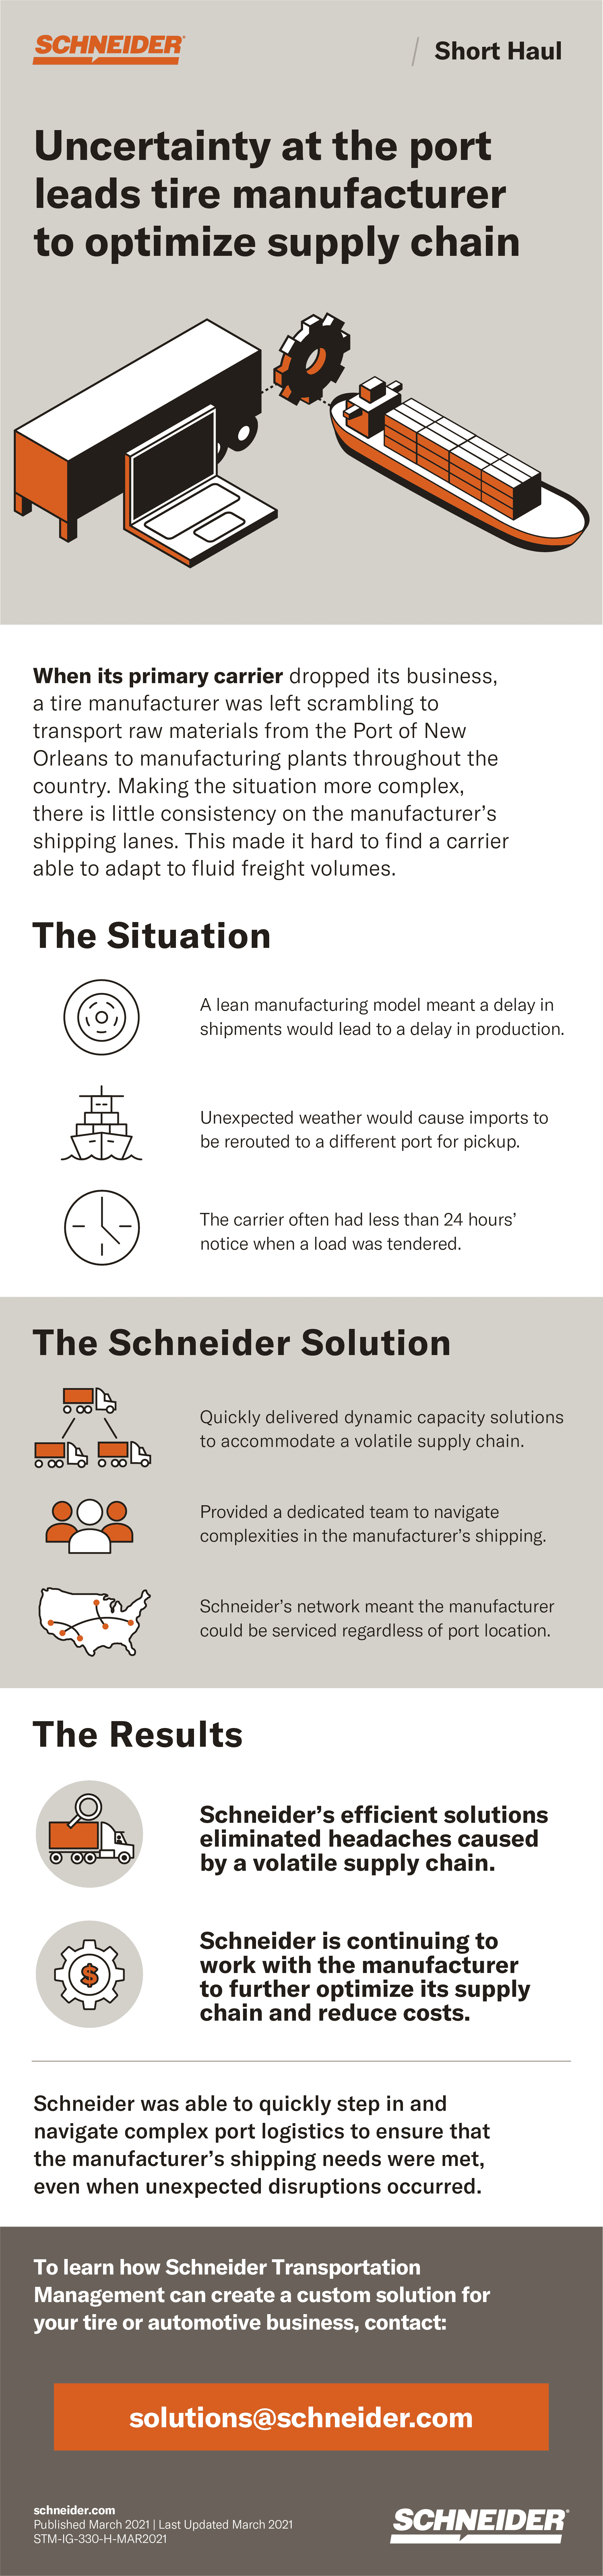 Uncertainty at the port leads tire manufacturer to optimize supply chain infographic